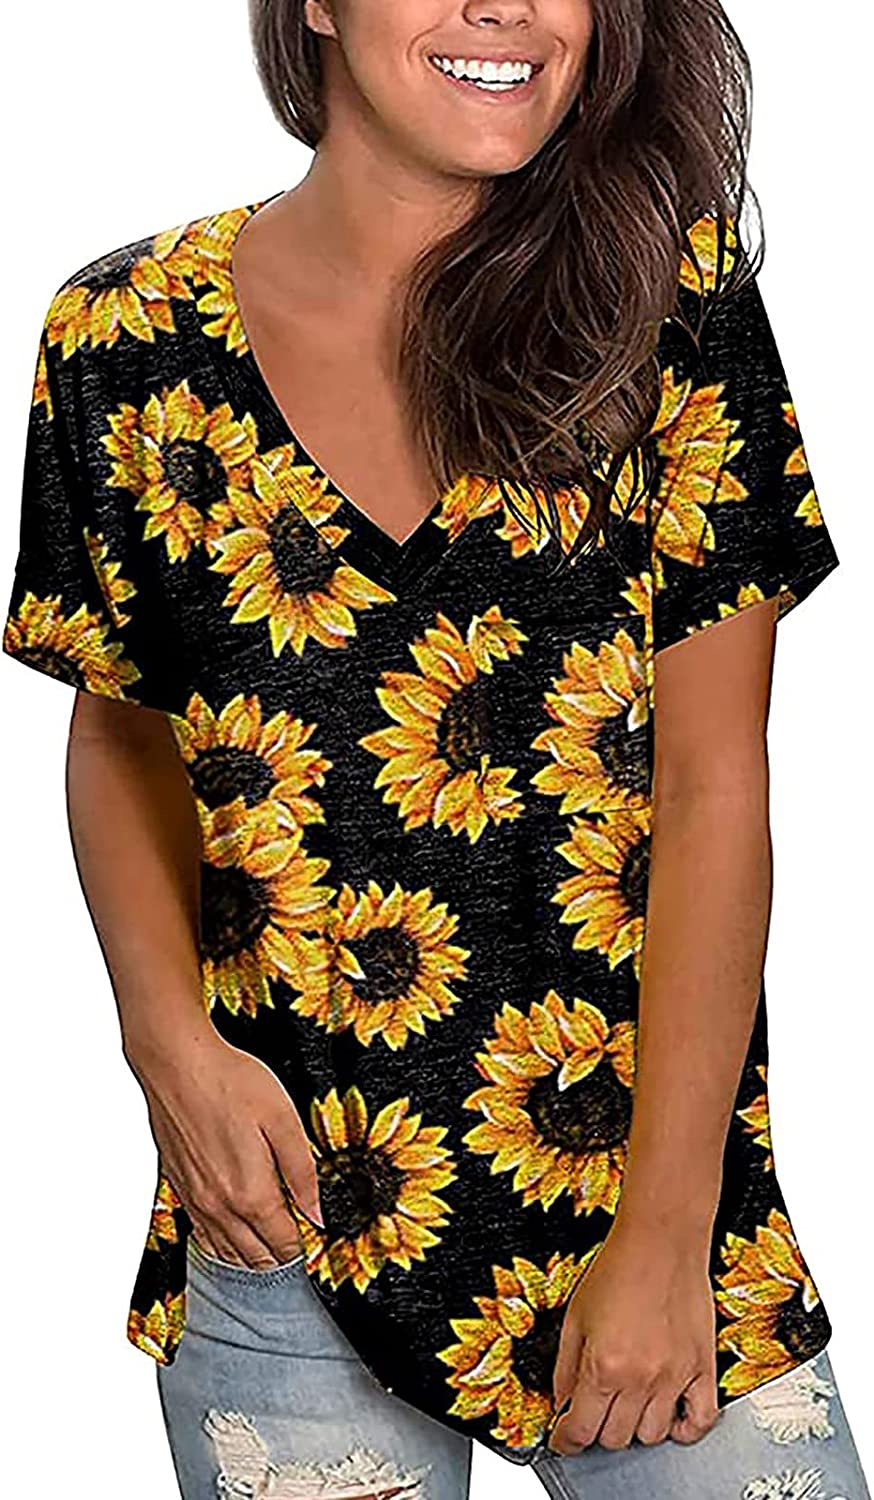 5665 Little Stars Tops for Women Casual Summer Flowers Printed Tshirts V Neck Tops Casual Loose Blouses Basic Tees